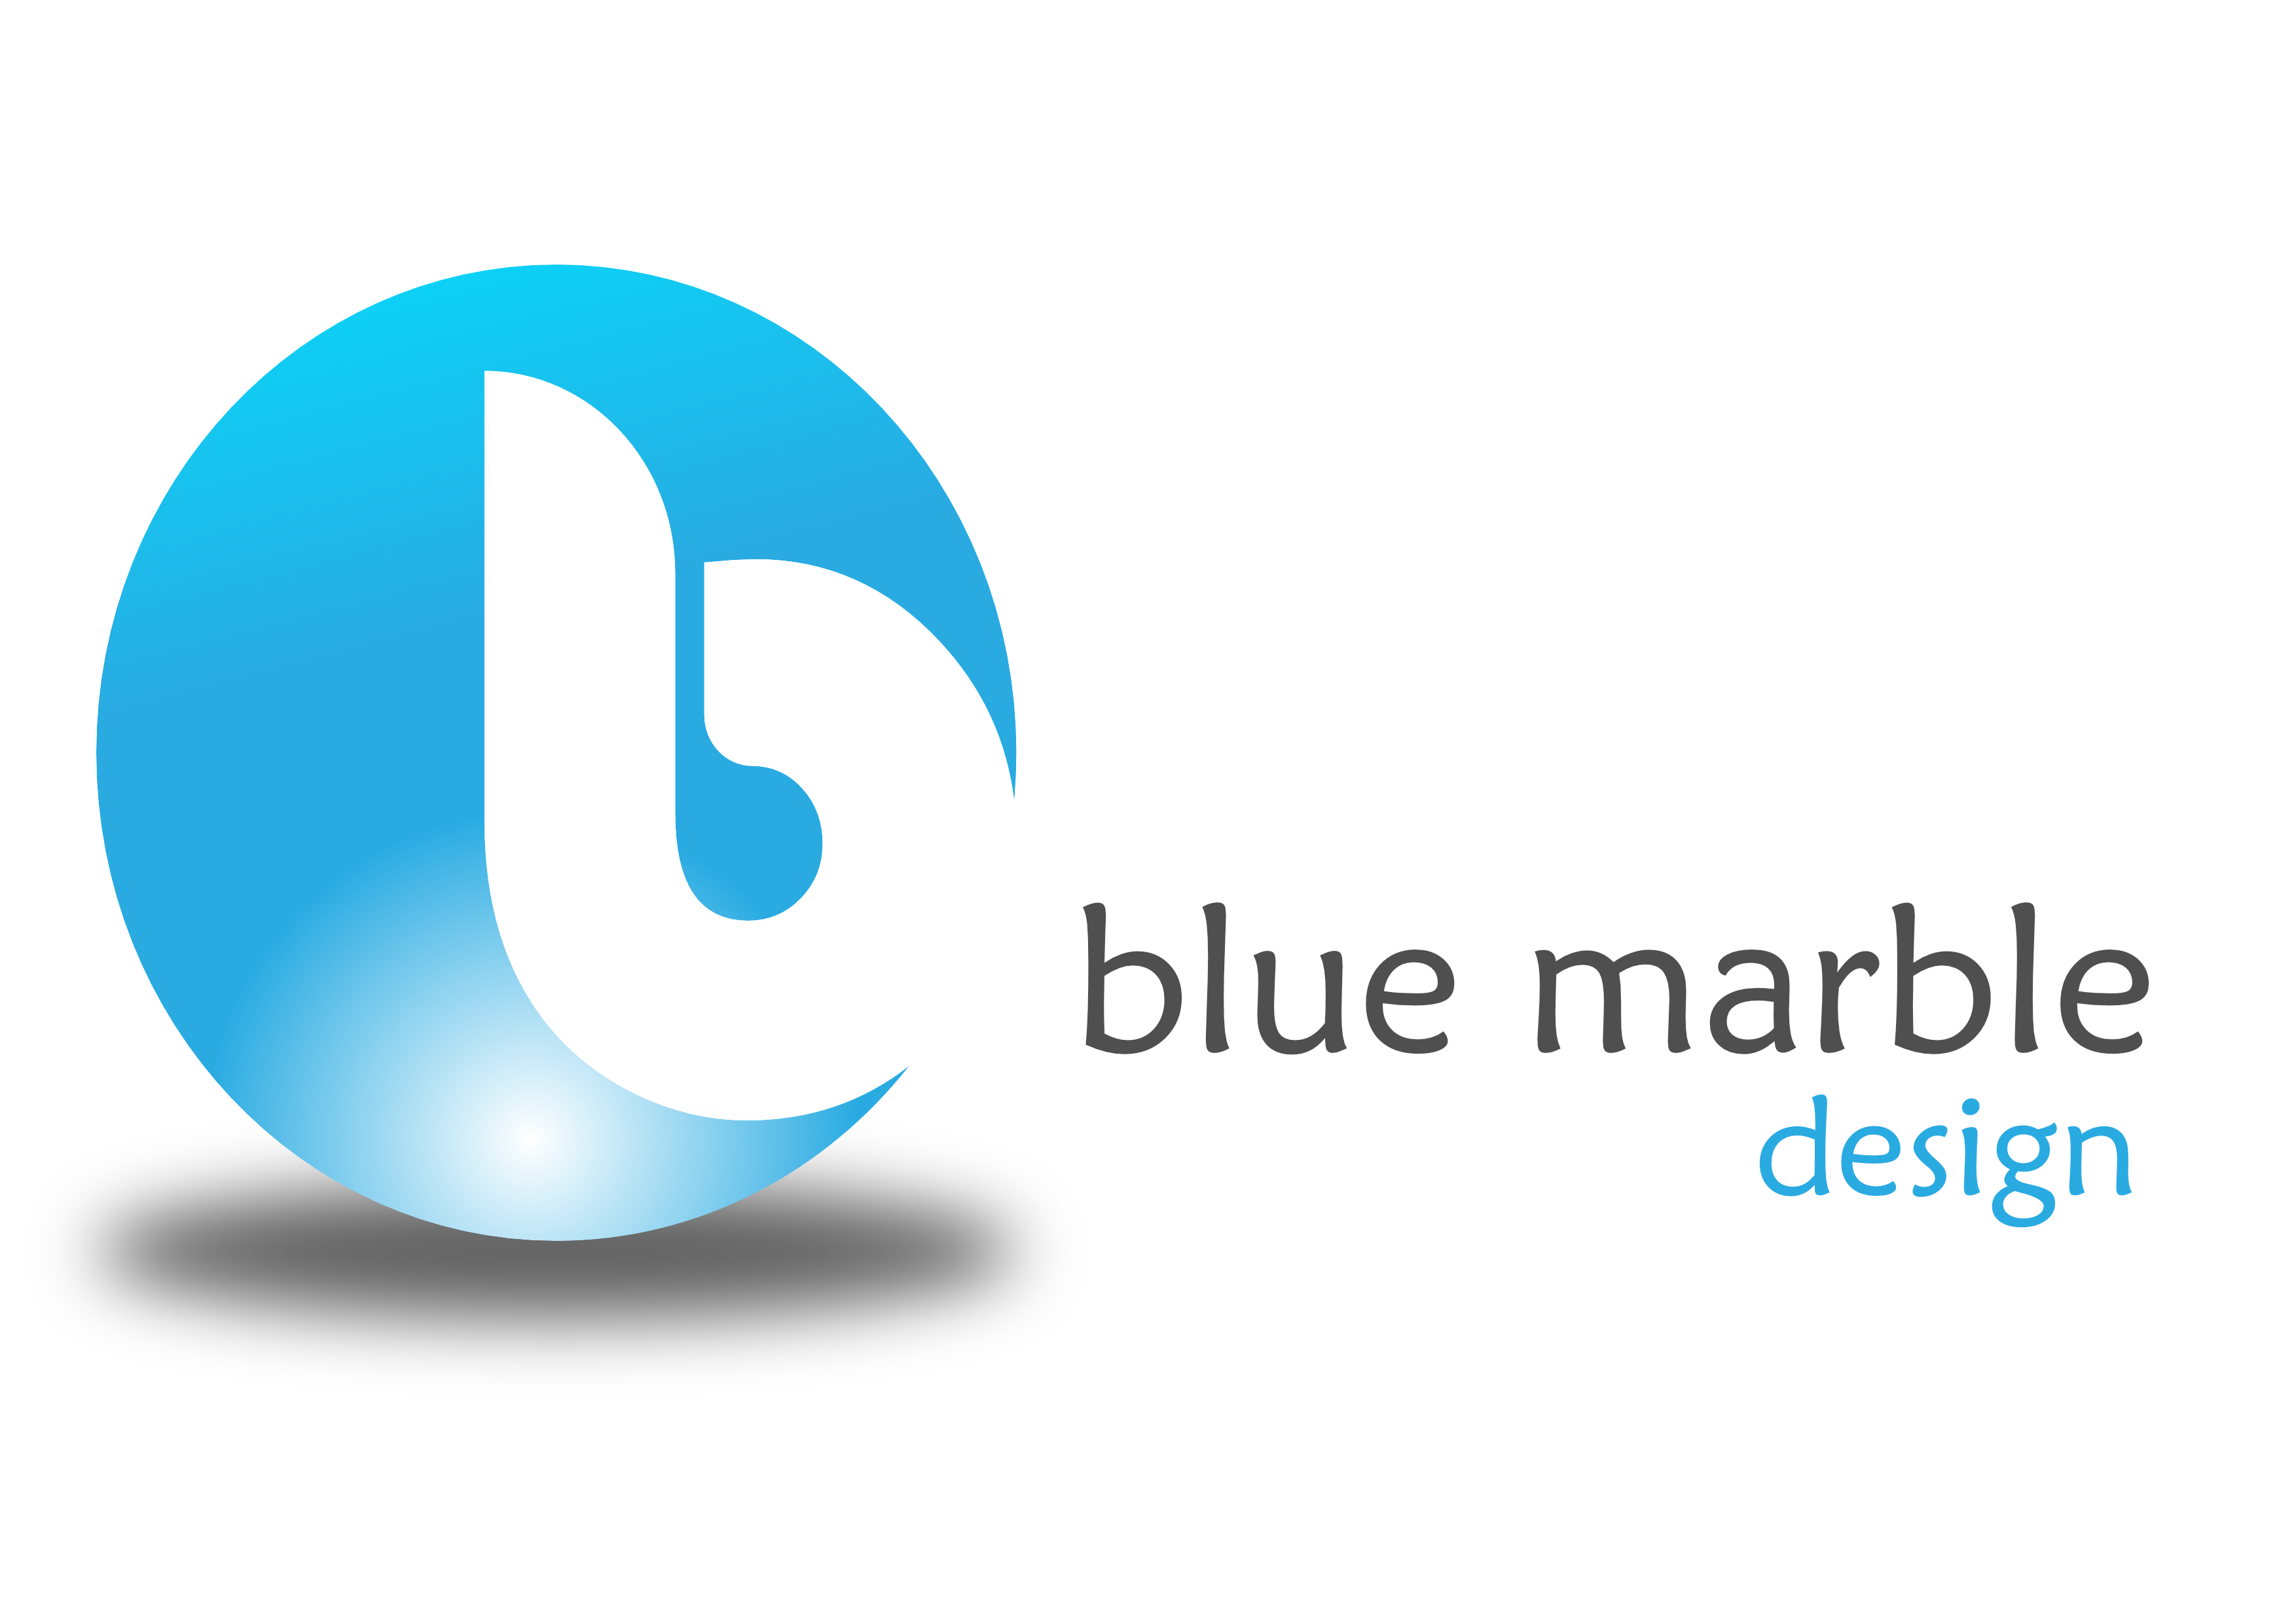 Pin By Blue Marble Design Uk On Http Www Bluemarbledesign Co Uk Company Logo Tech Company Logos Marble Design